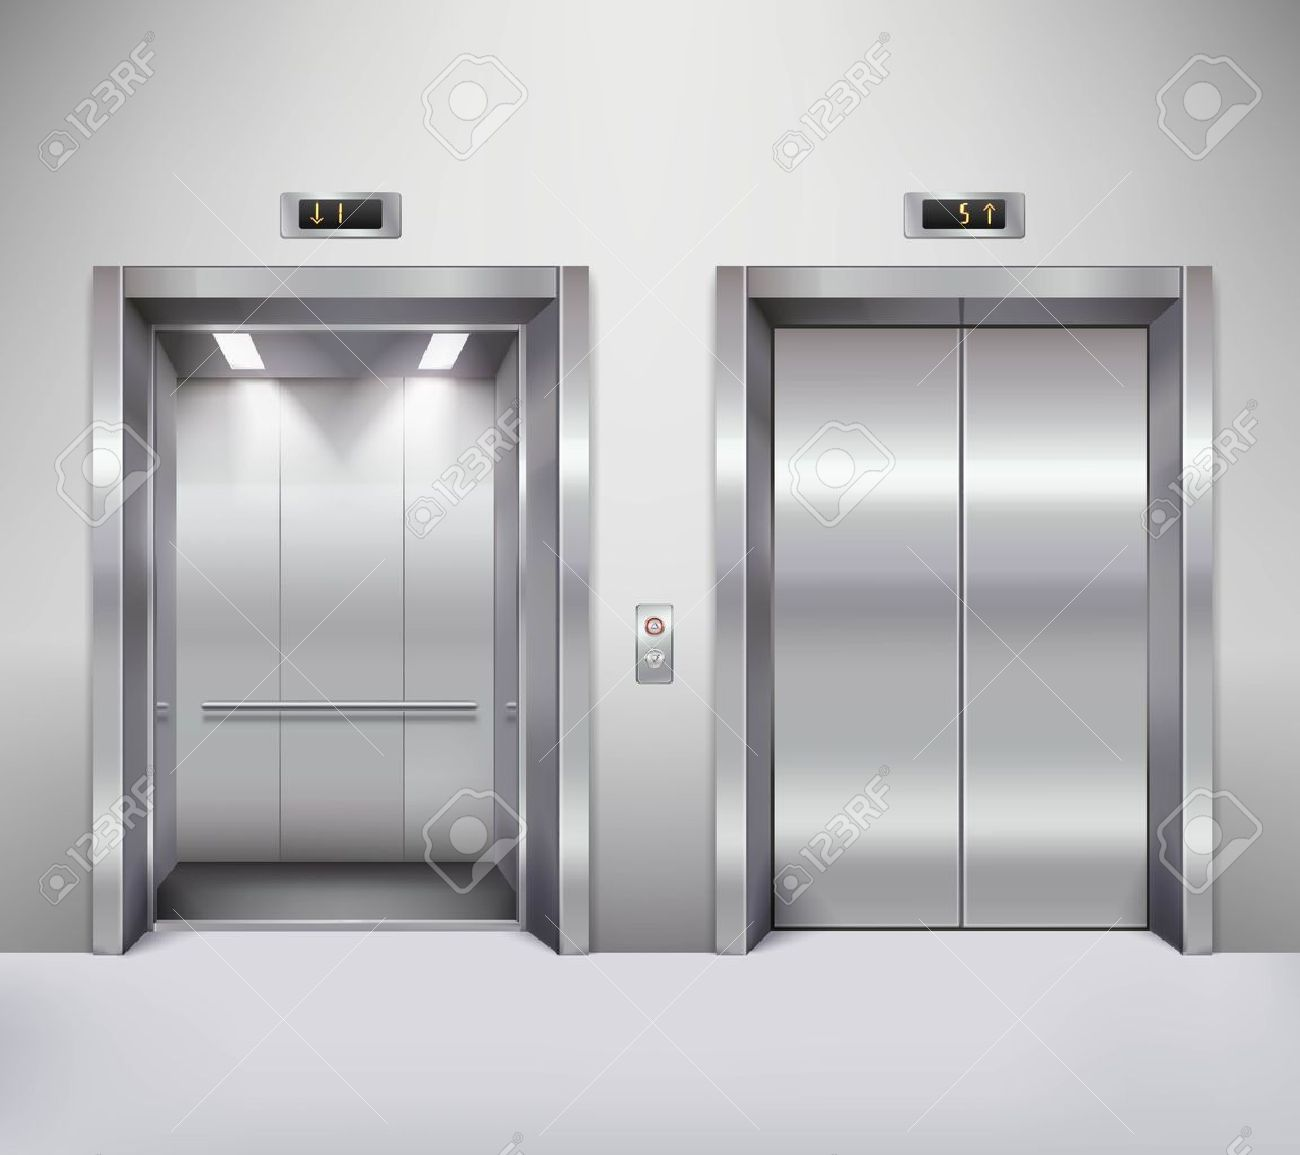 12,392 Elevator Stock Vector Illustration And Royalty Free Elevator.